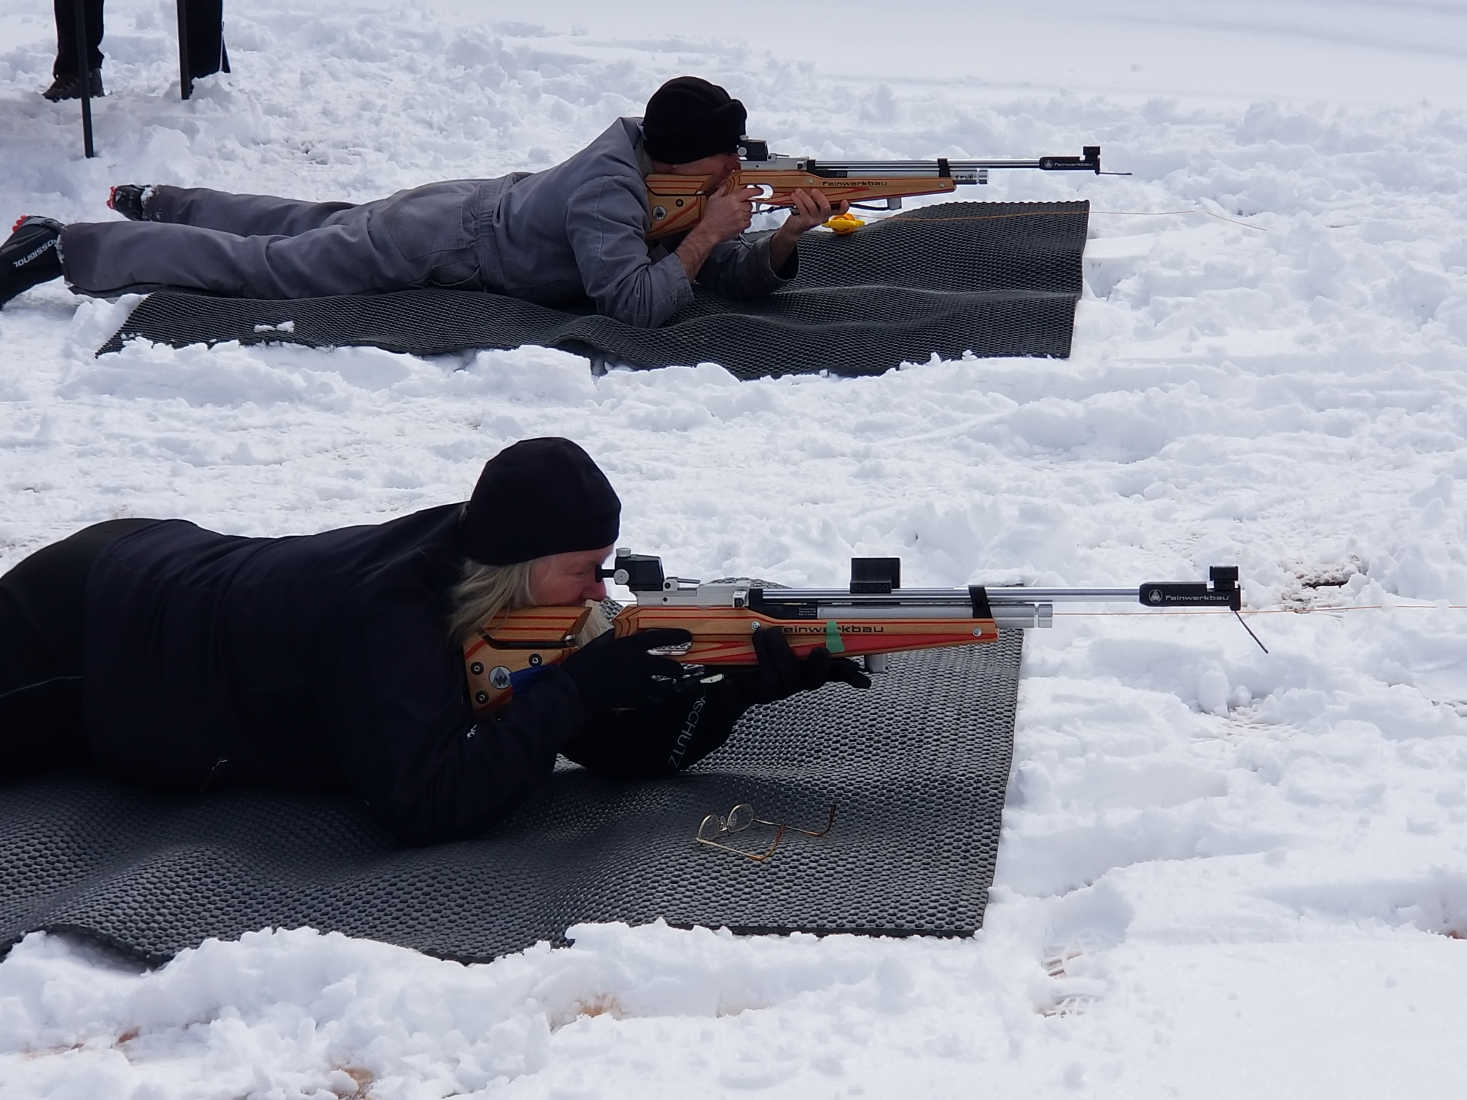 Veterans Venture into Catskill Mountains to Learn Biathlon Skills